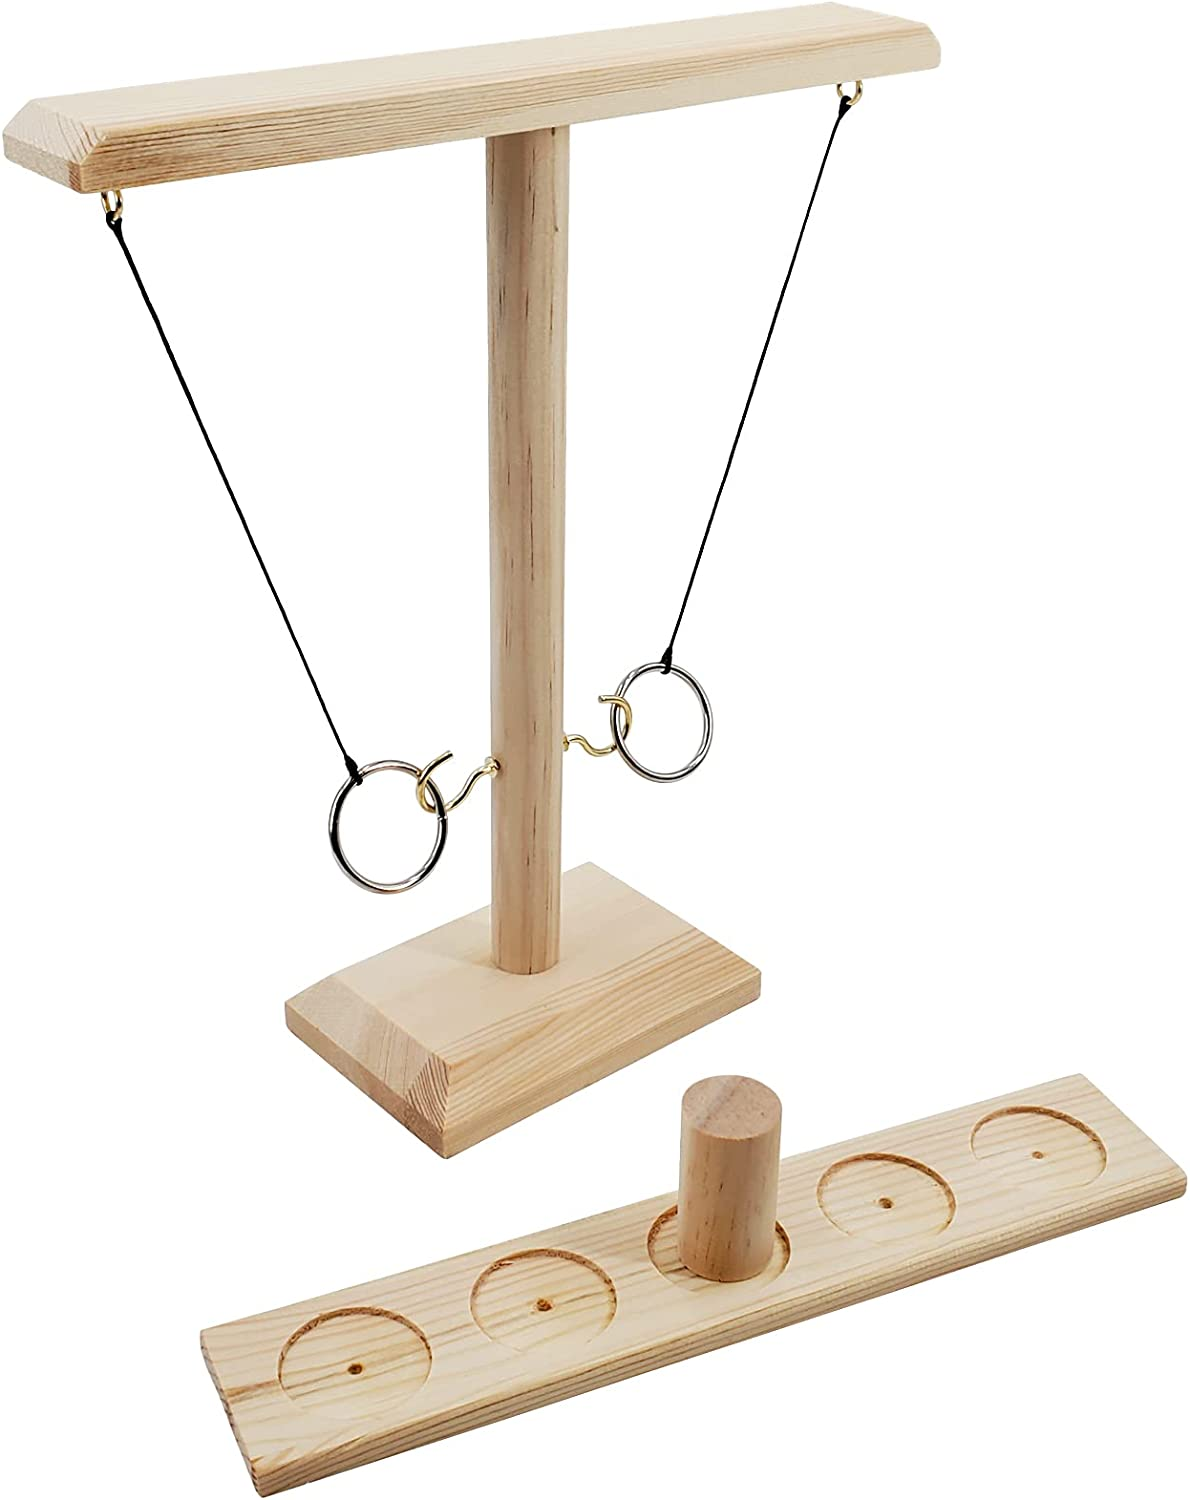 SHELLBOBO Hooks Ring Games Indianapolis Mall with Choice Shot Bundle Kids Tabl Ladder for